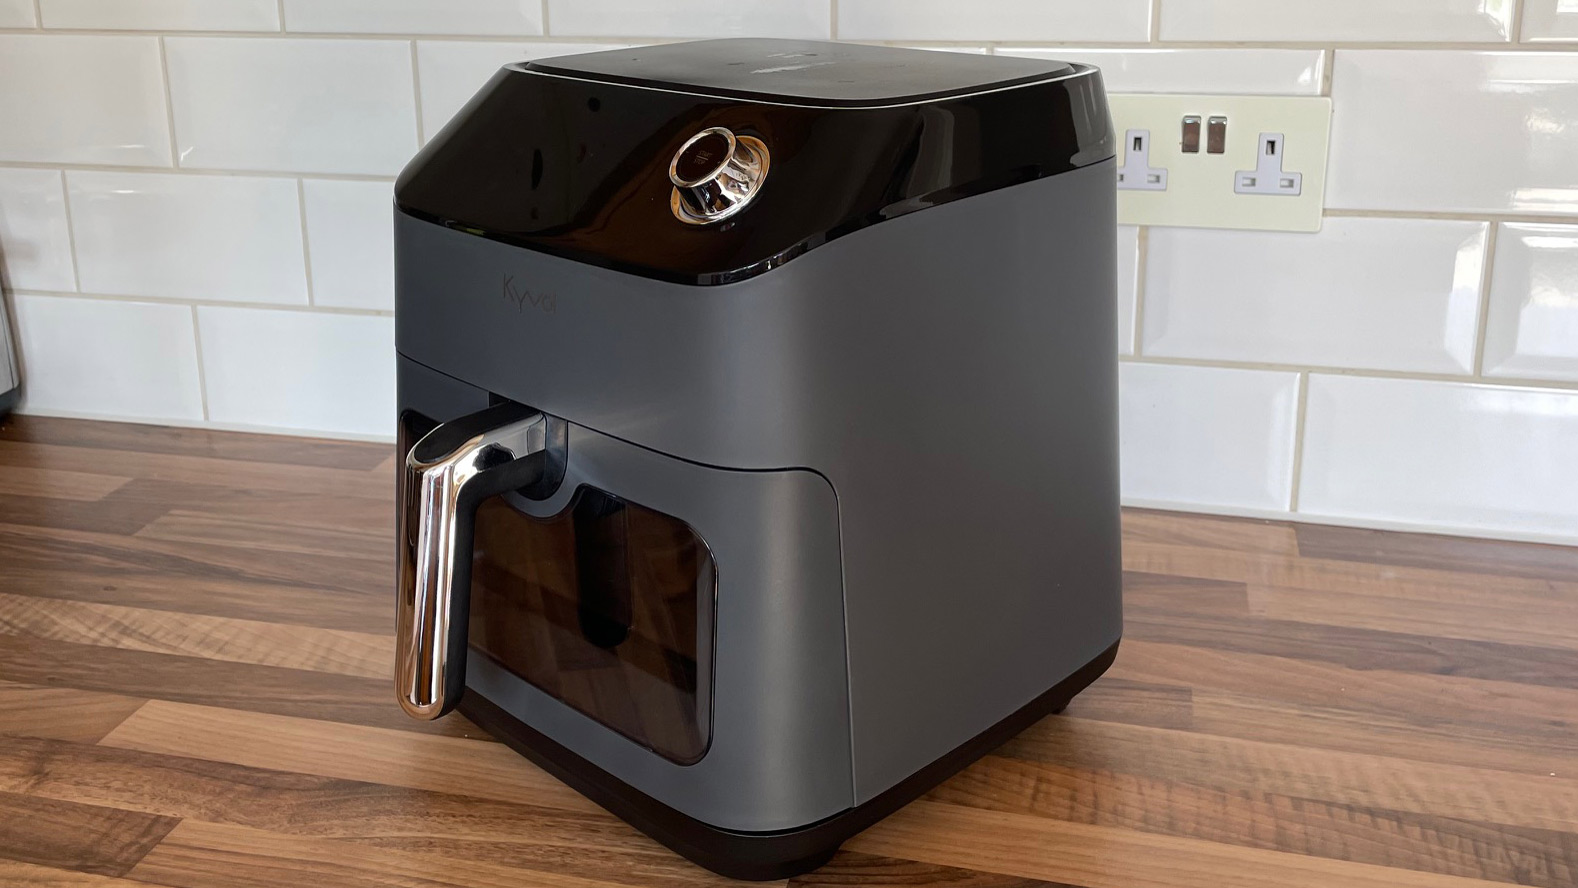 side view of the Kyvol AF600 Air Fryer on a kitchen countertop